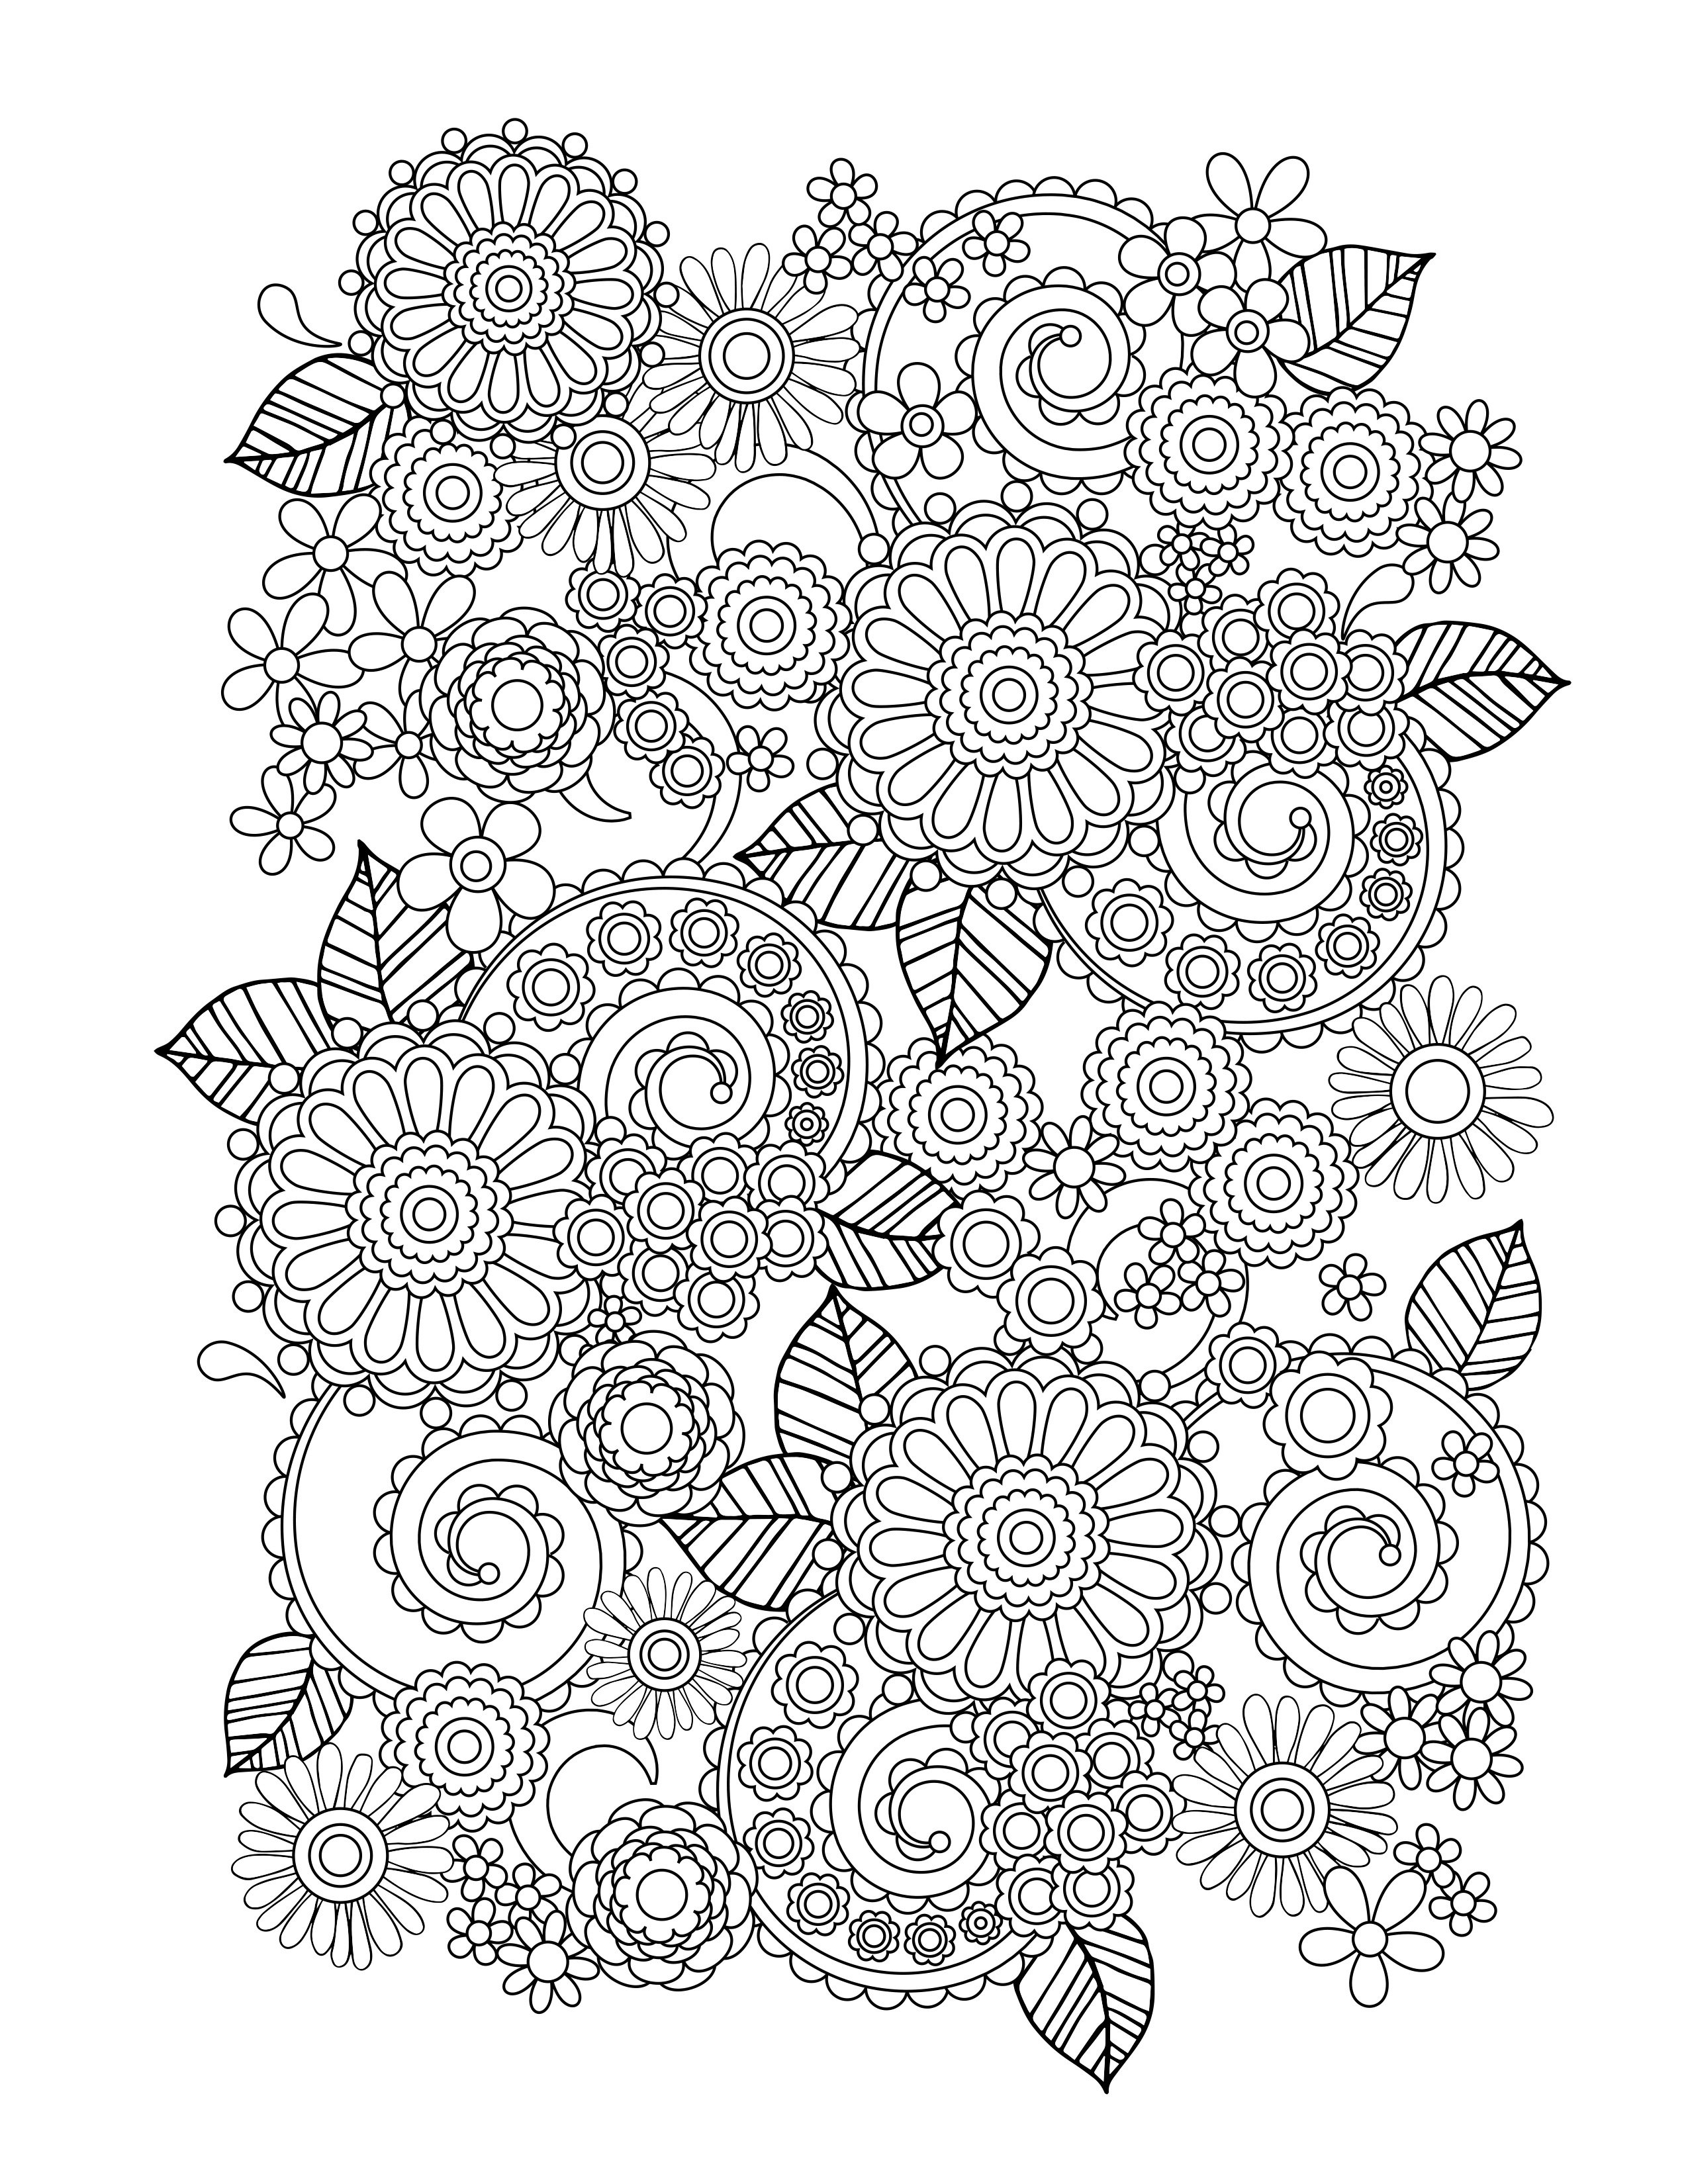 coloring picture of flower coloring picture of flower coloring picture flower of